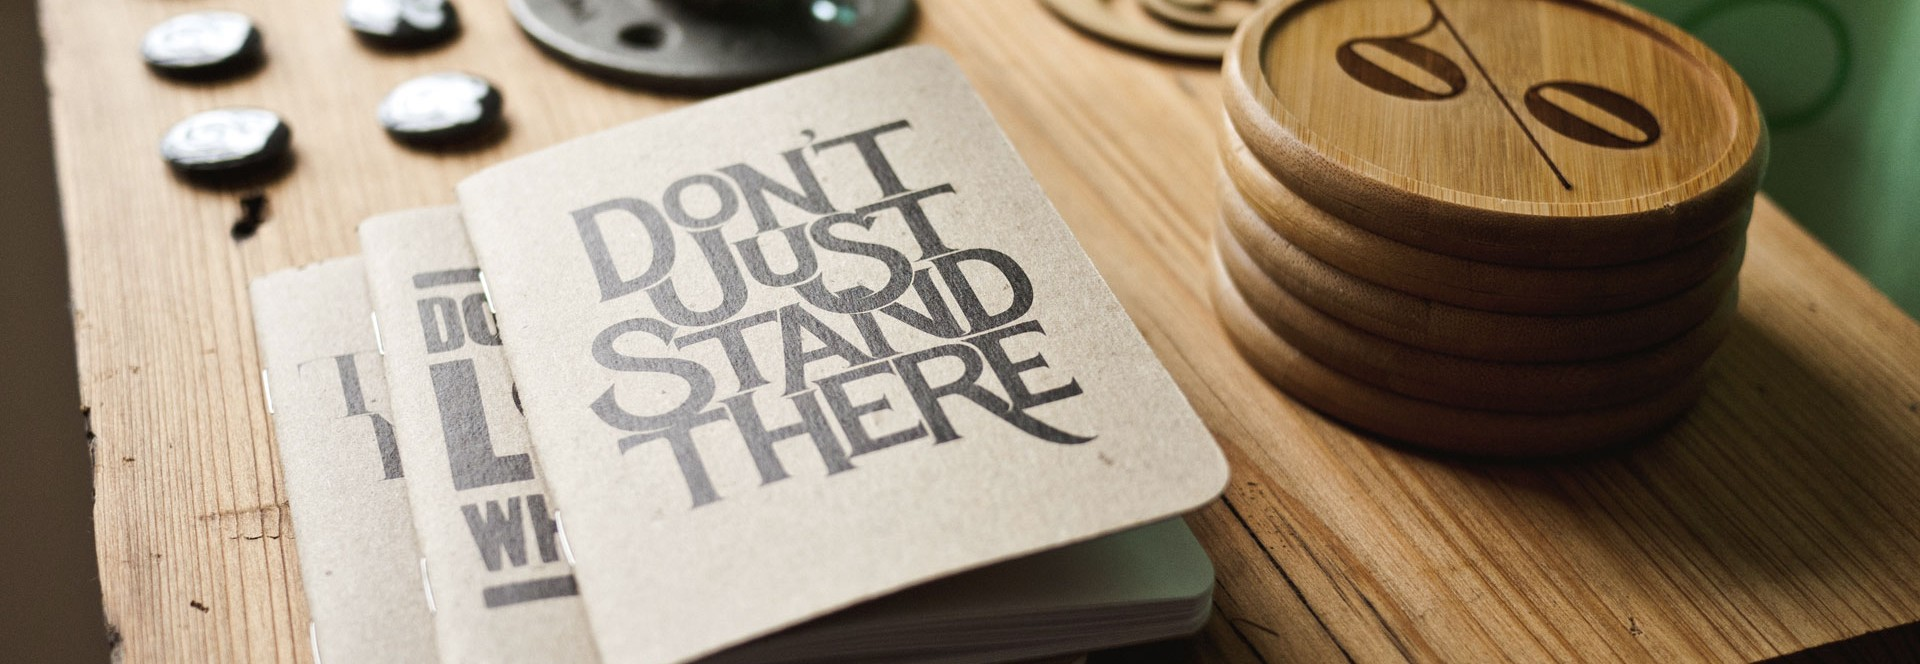 dont-just-stand